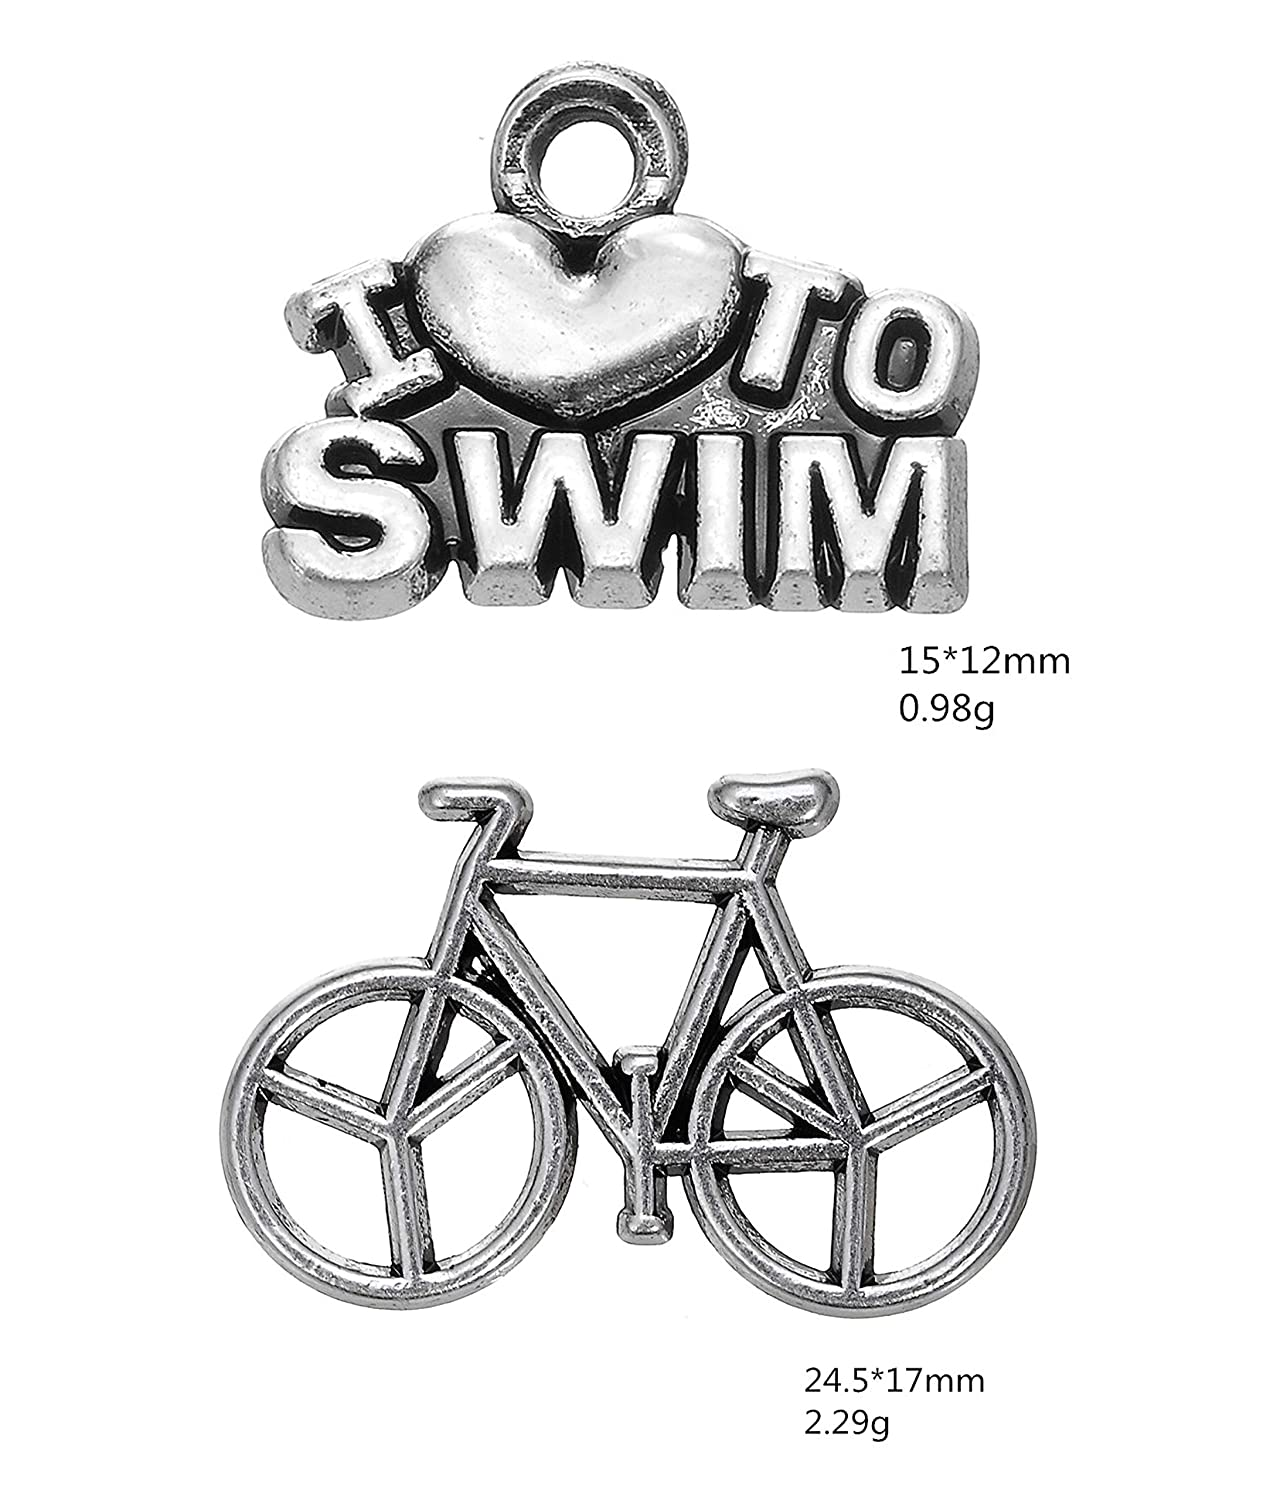 cooltime Stainless Steel Metal California Triathlon Swimming-Cycling-Running Bangle Bracelets Boys Girls Gifts